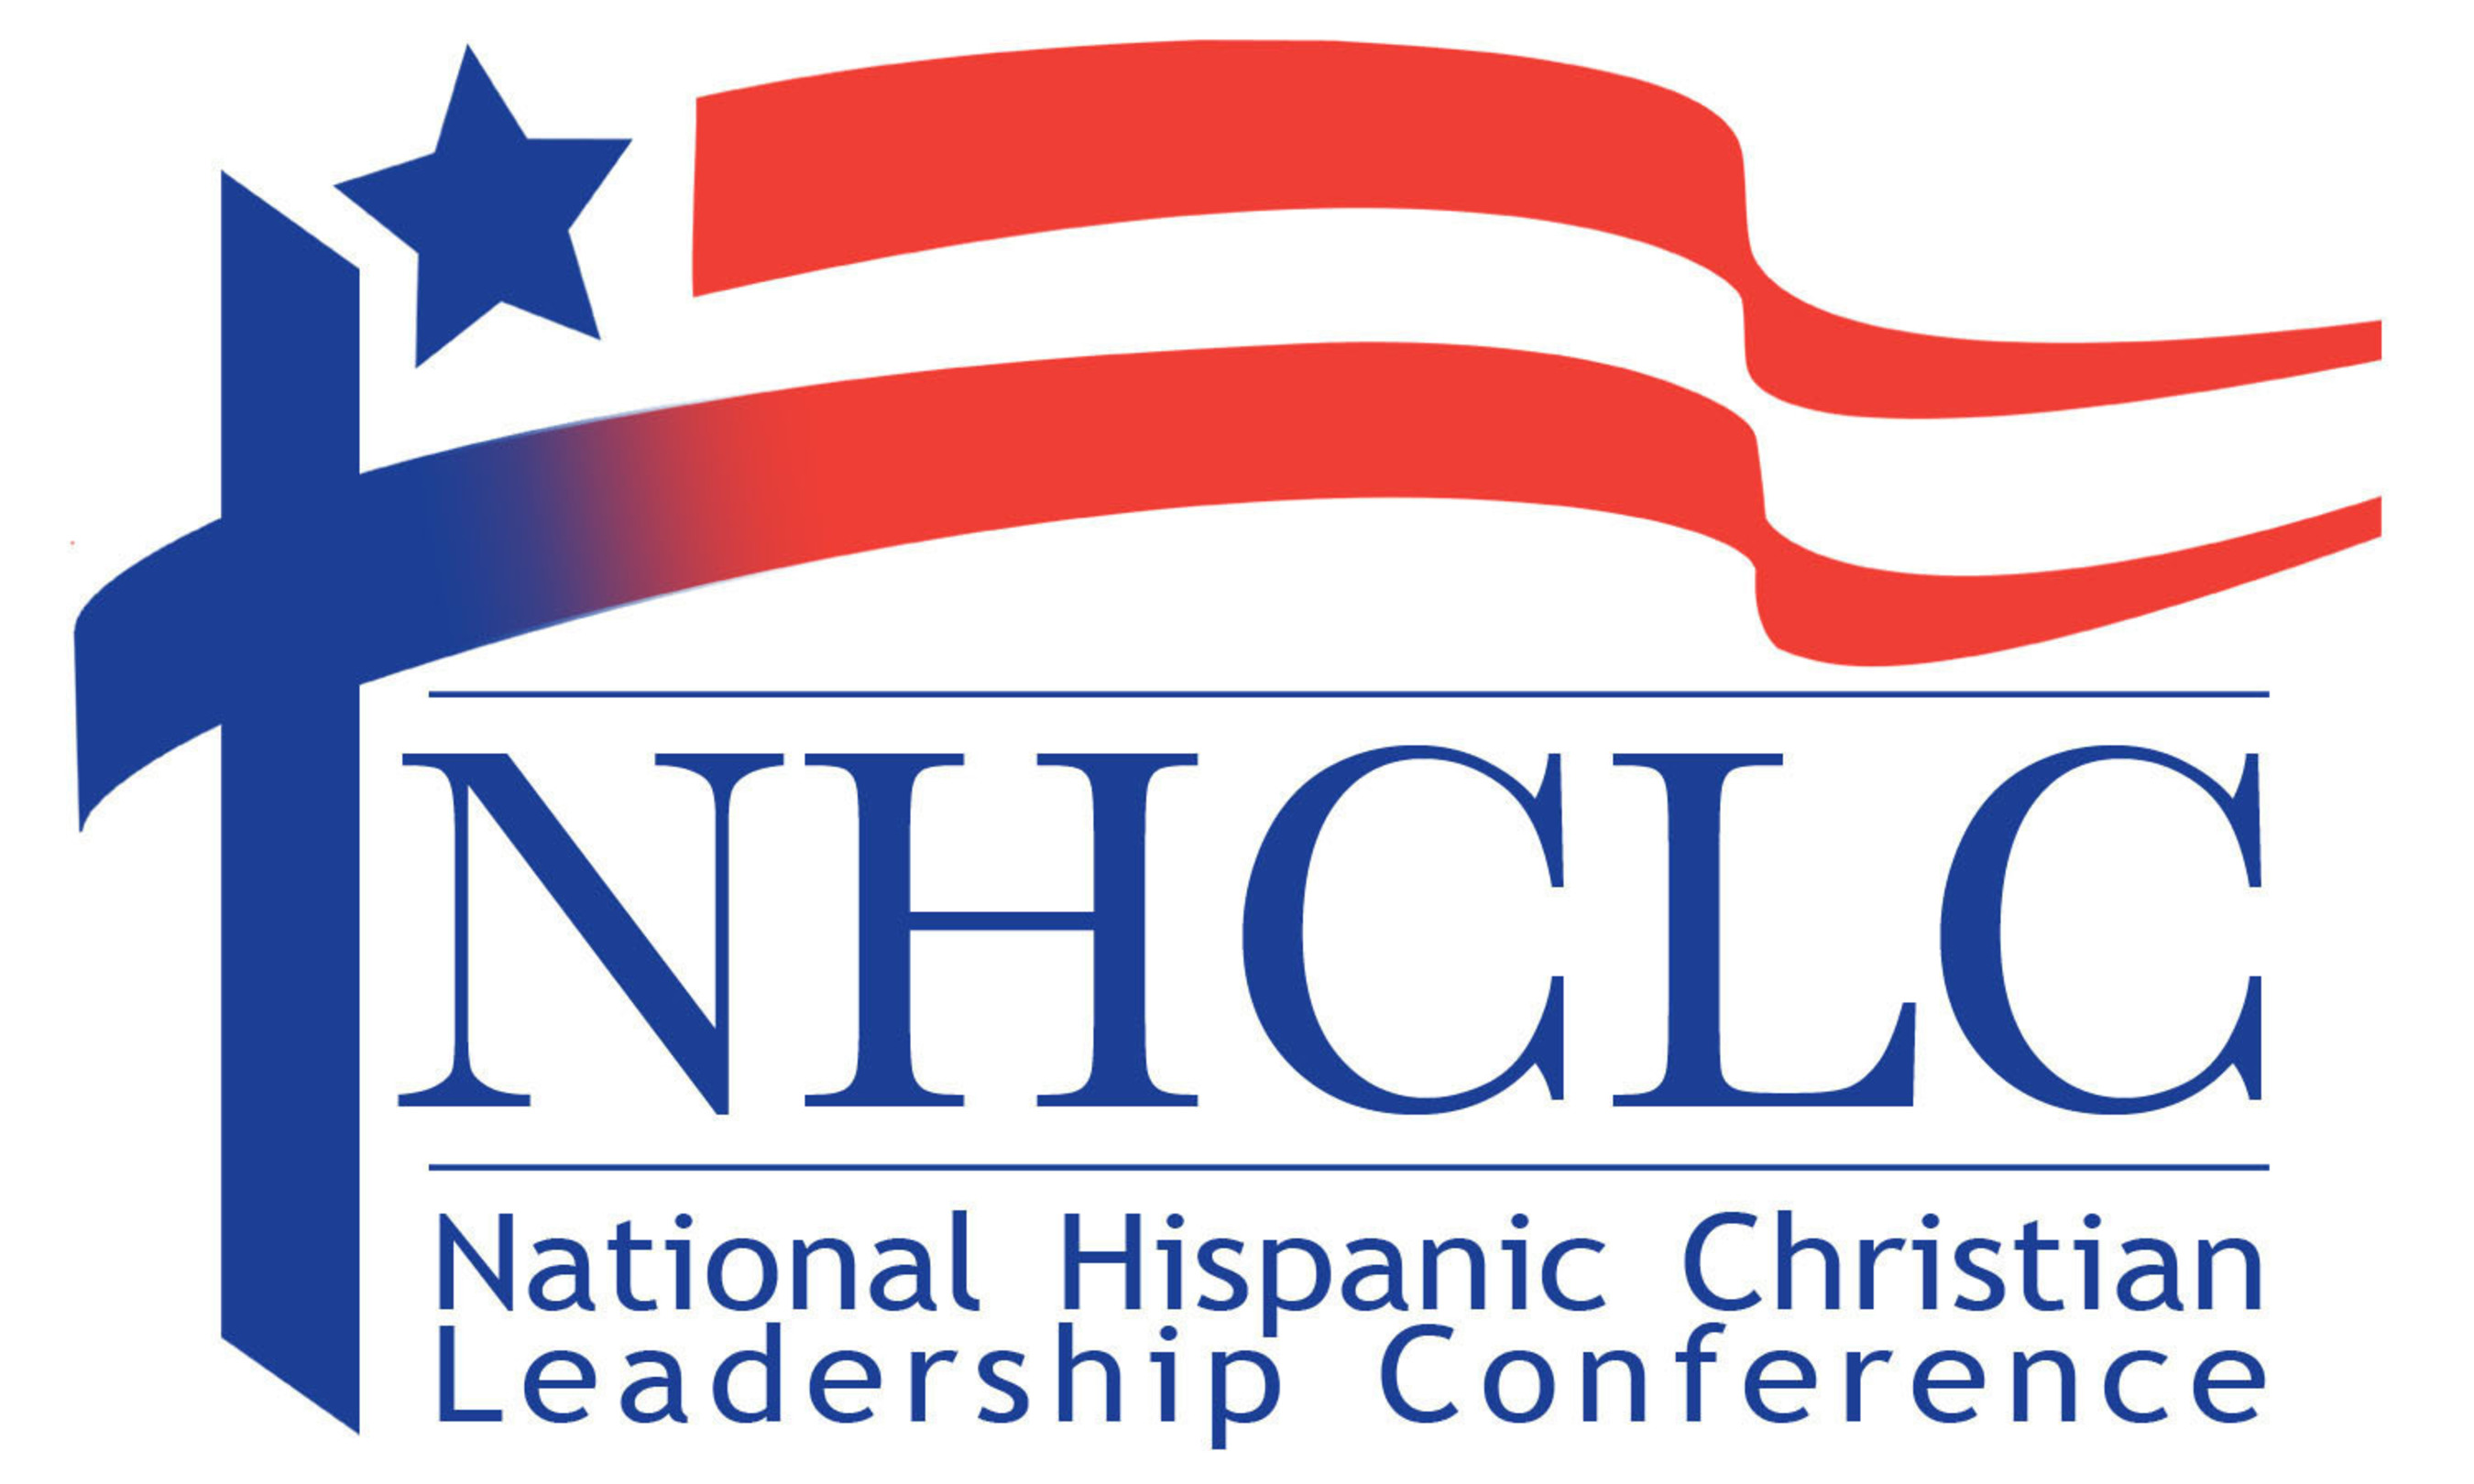 National Hispanic Christian Leadership Conference logo